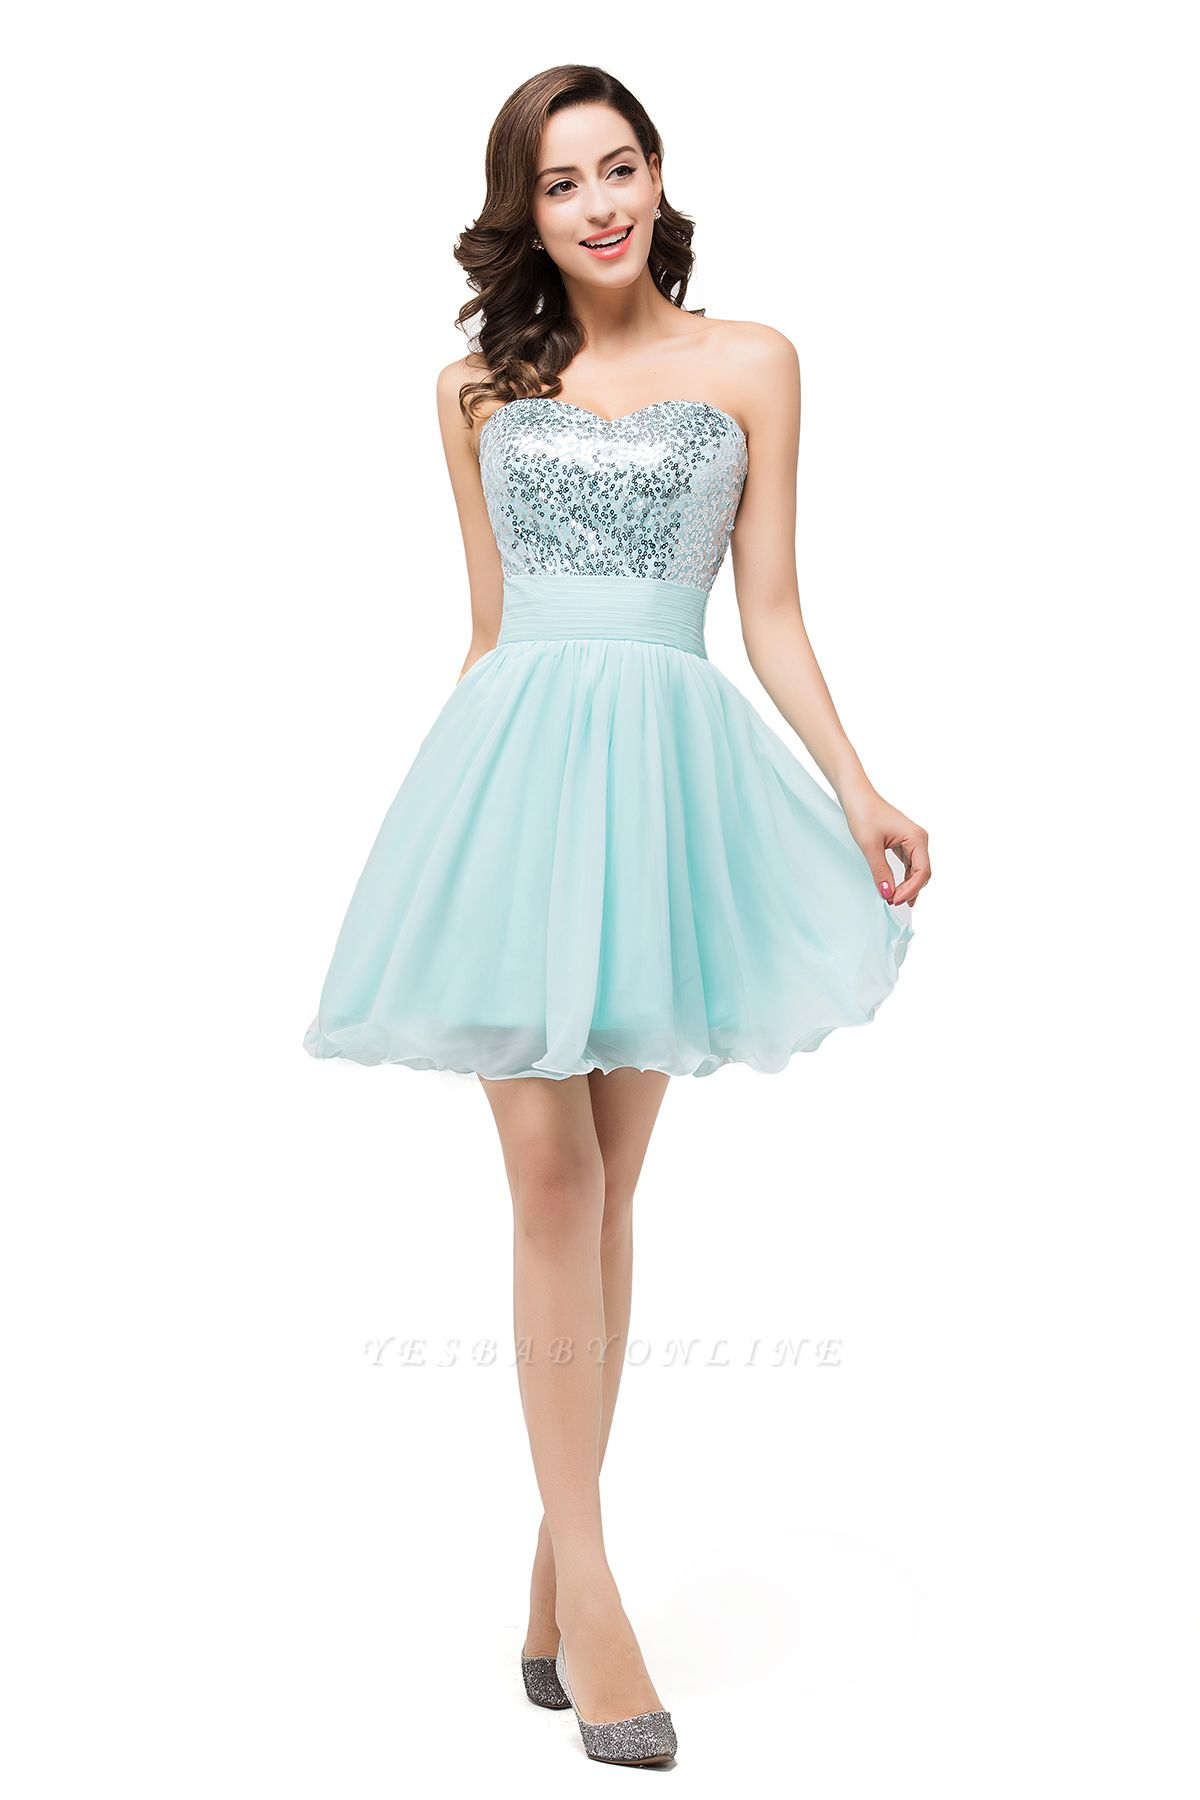 Ruffled Strapless Short Cute  Bridesmaid Sequined Prom Dress